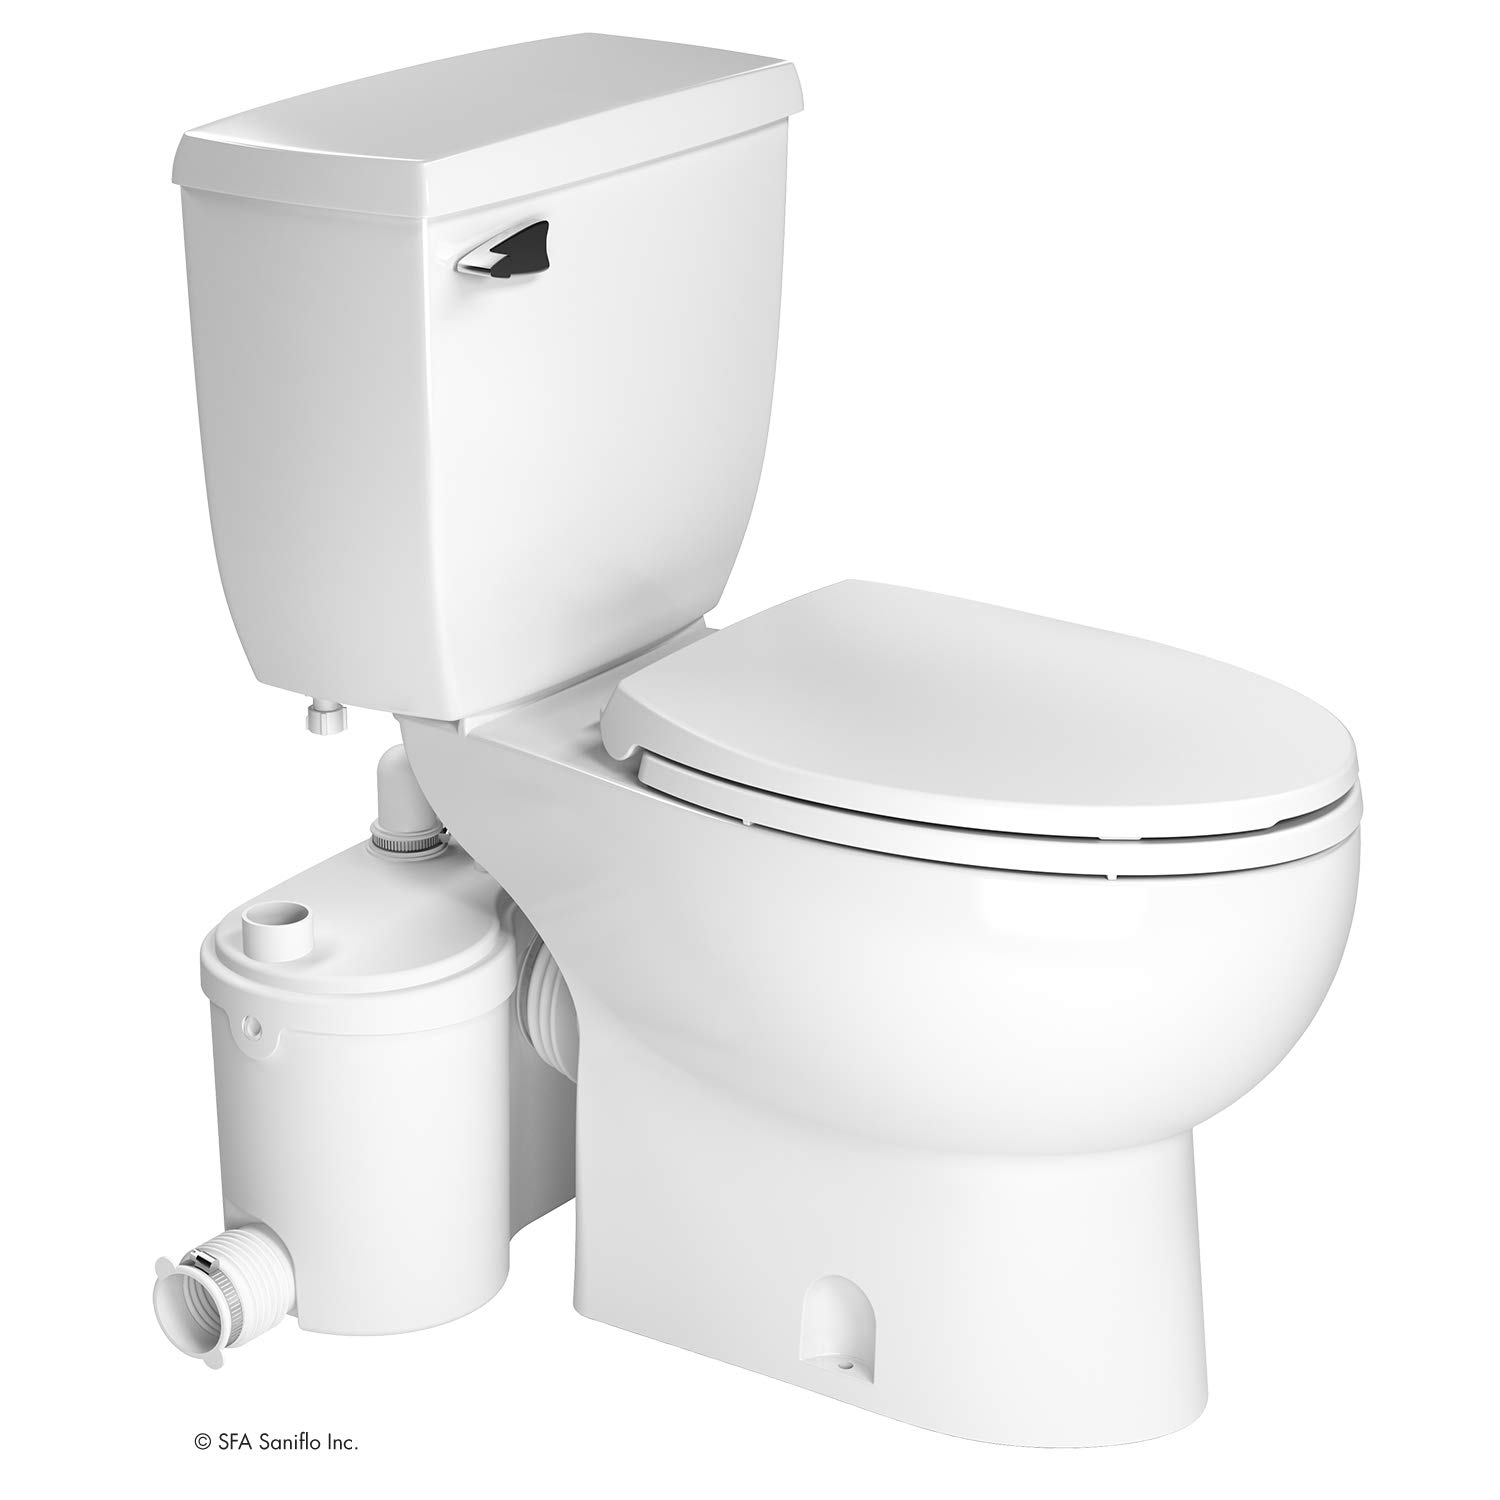 Top 4 Best Saniflo Toilets Reviews in 2020 4